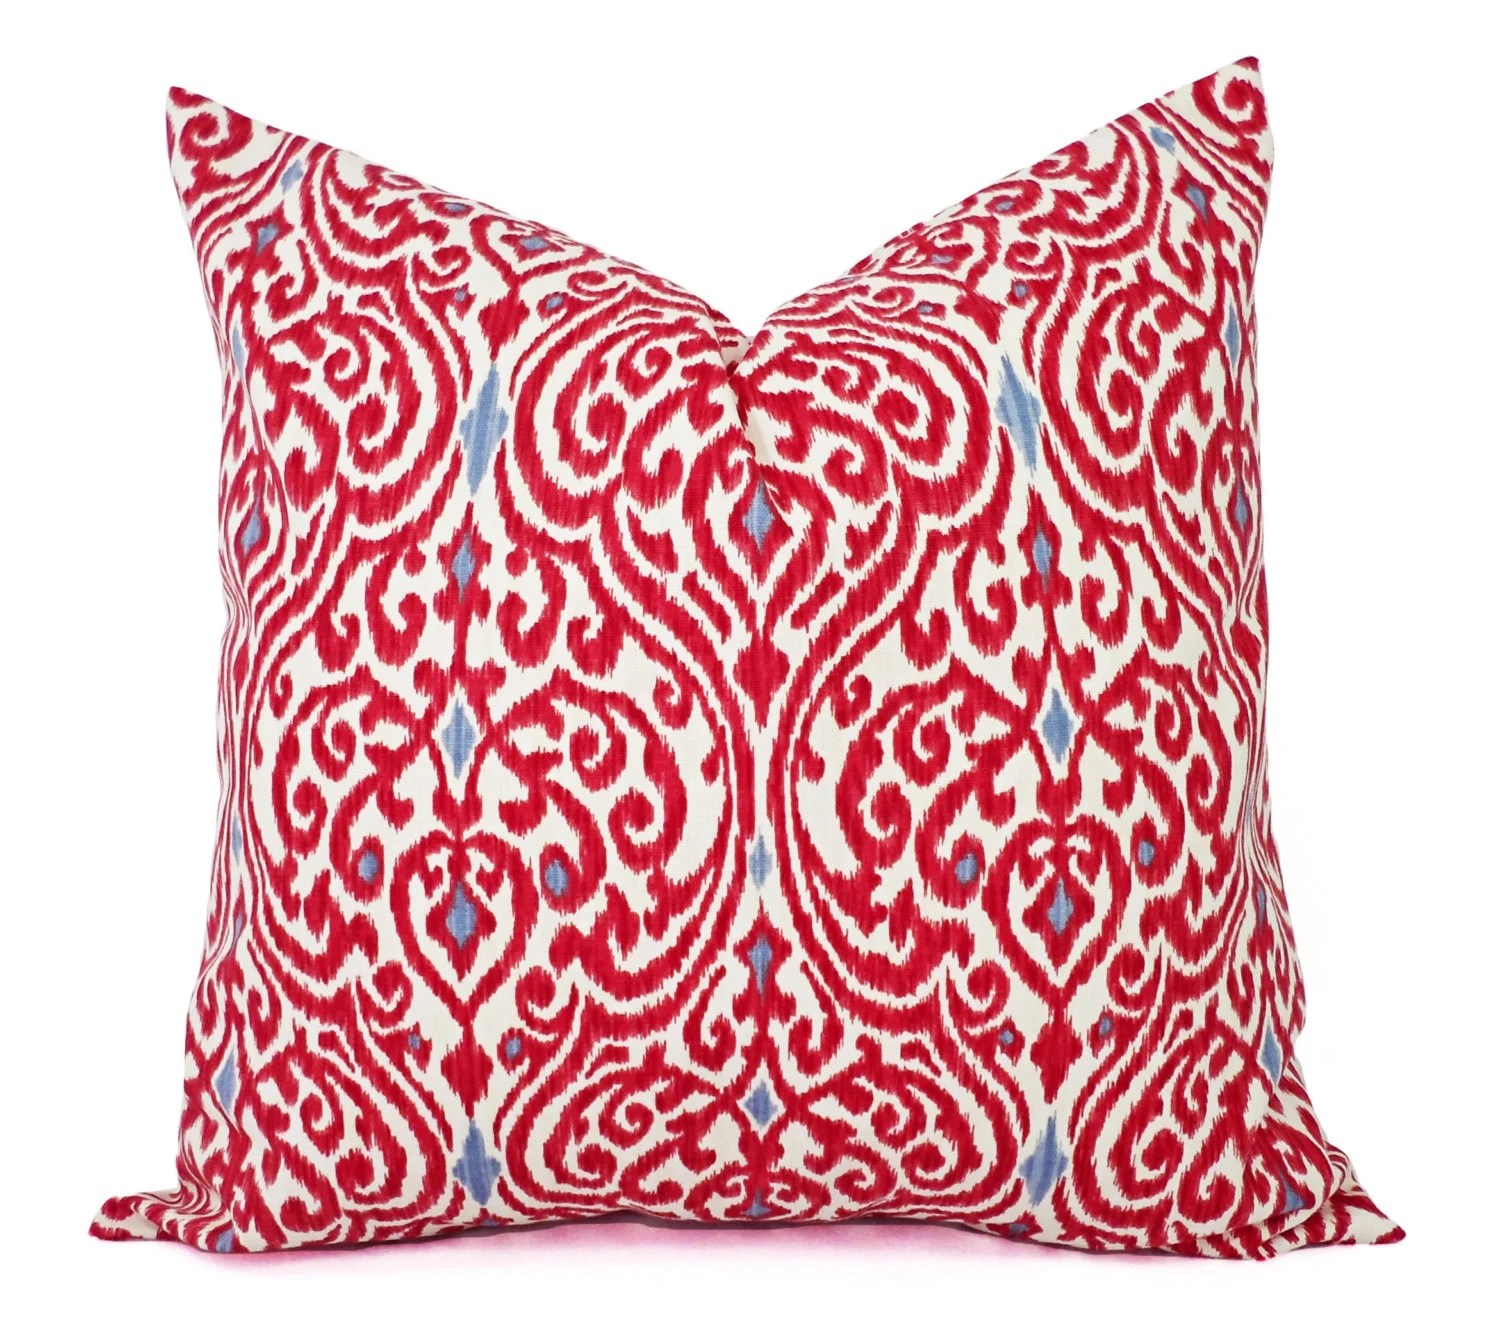 Two Decorative Throw Pillow Covers Red and Beige Ikat